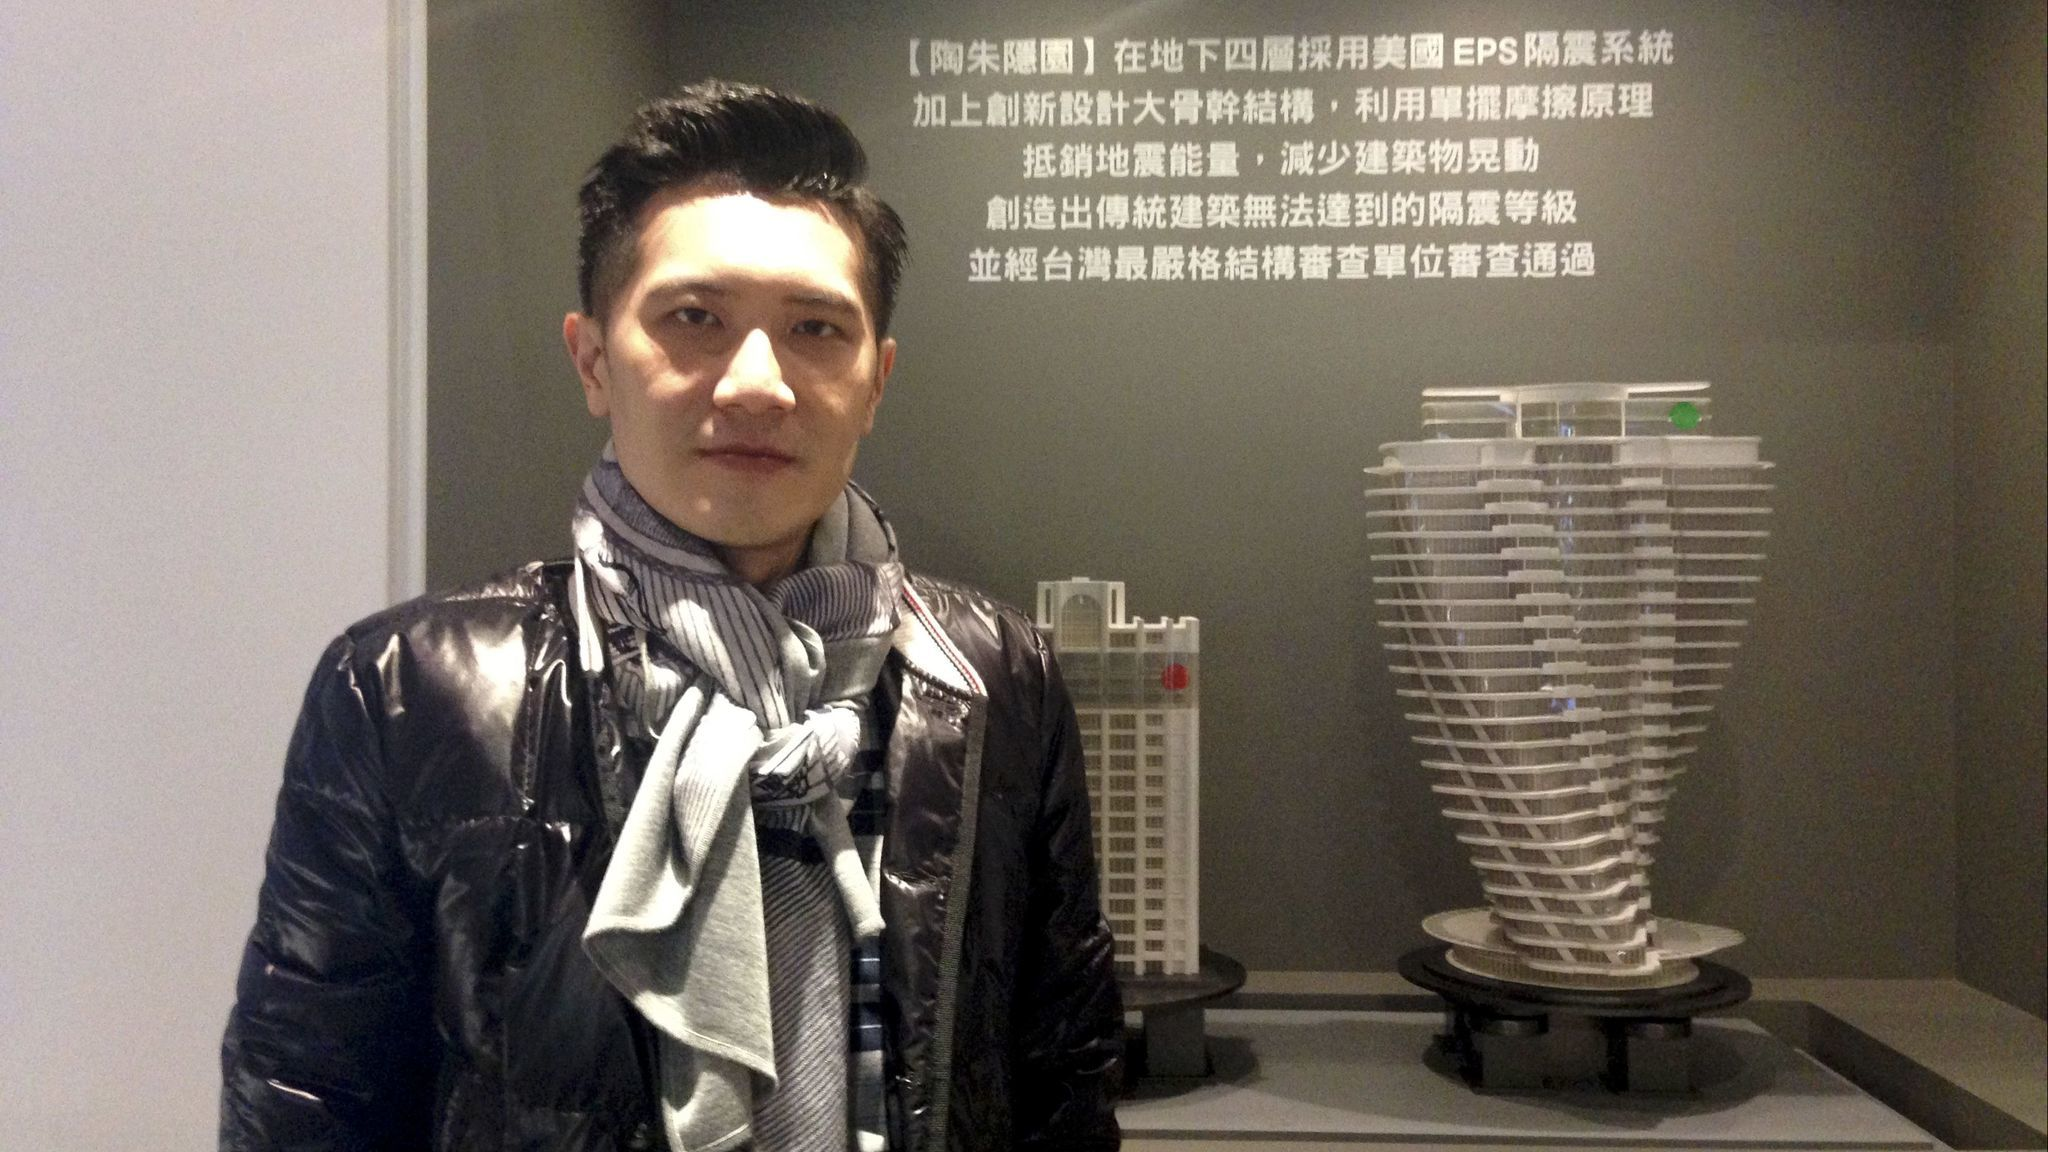 Eliot Shen, project manager of the Tao Zhu Yi Yuan tower in Taipei, stands with a model of his build